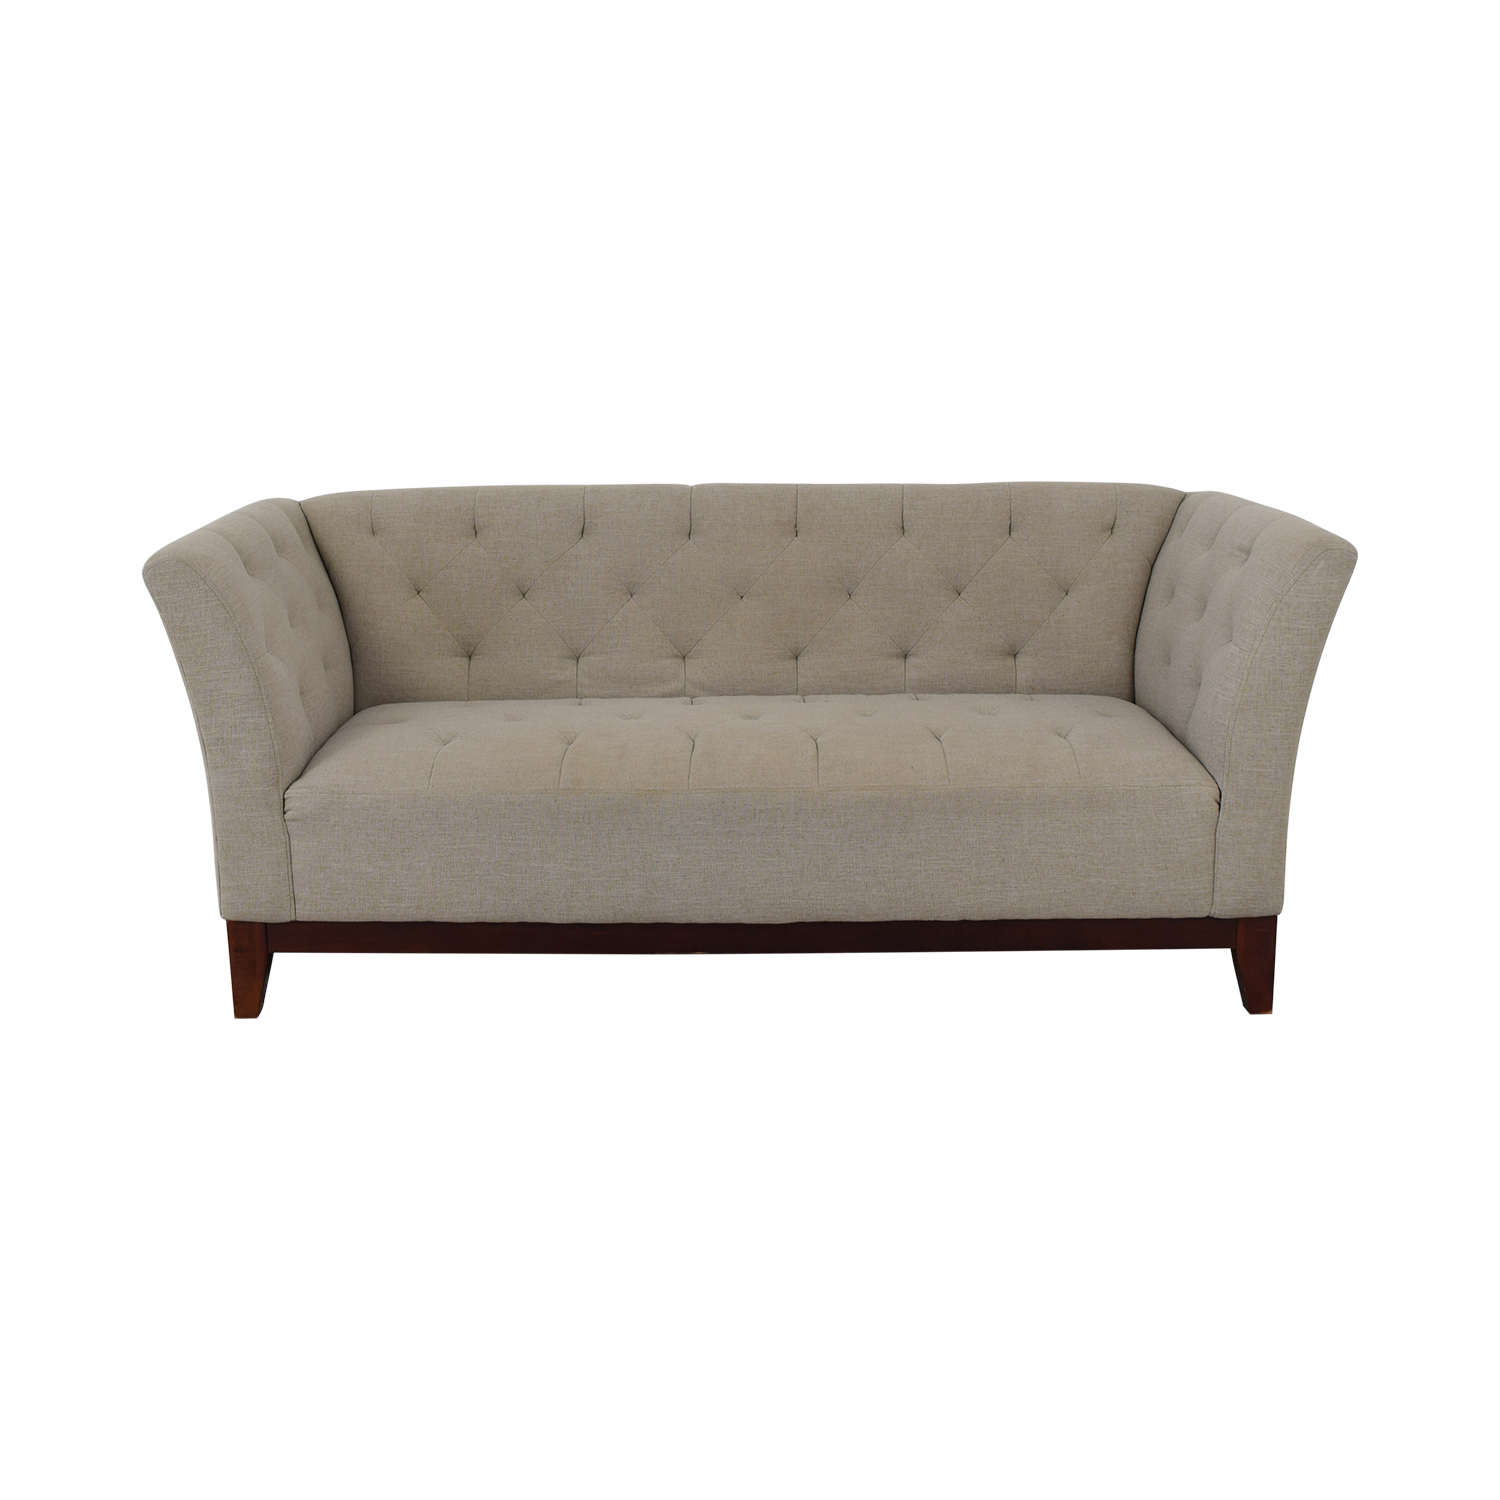 Peachy 79 Off Macys Macys Tory Apartment Size Sofa Sofas Inzonedesignstudio Interior Chair Design Inzonedesignstudiocom